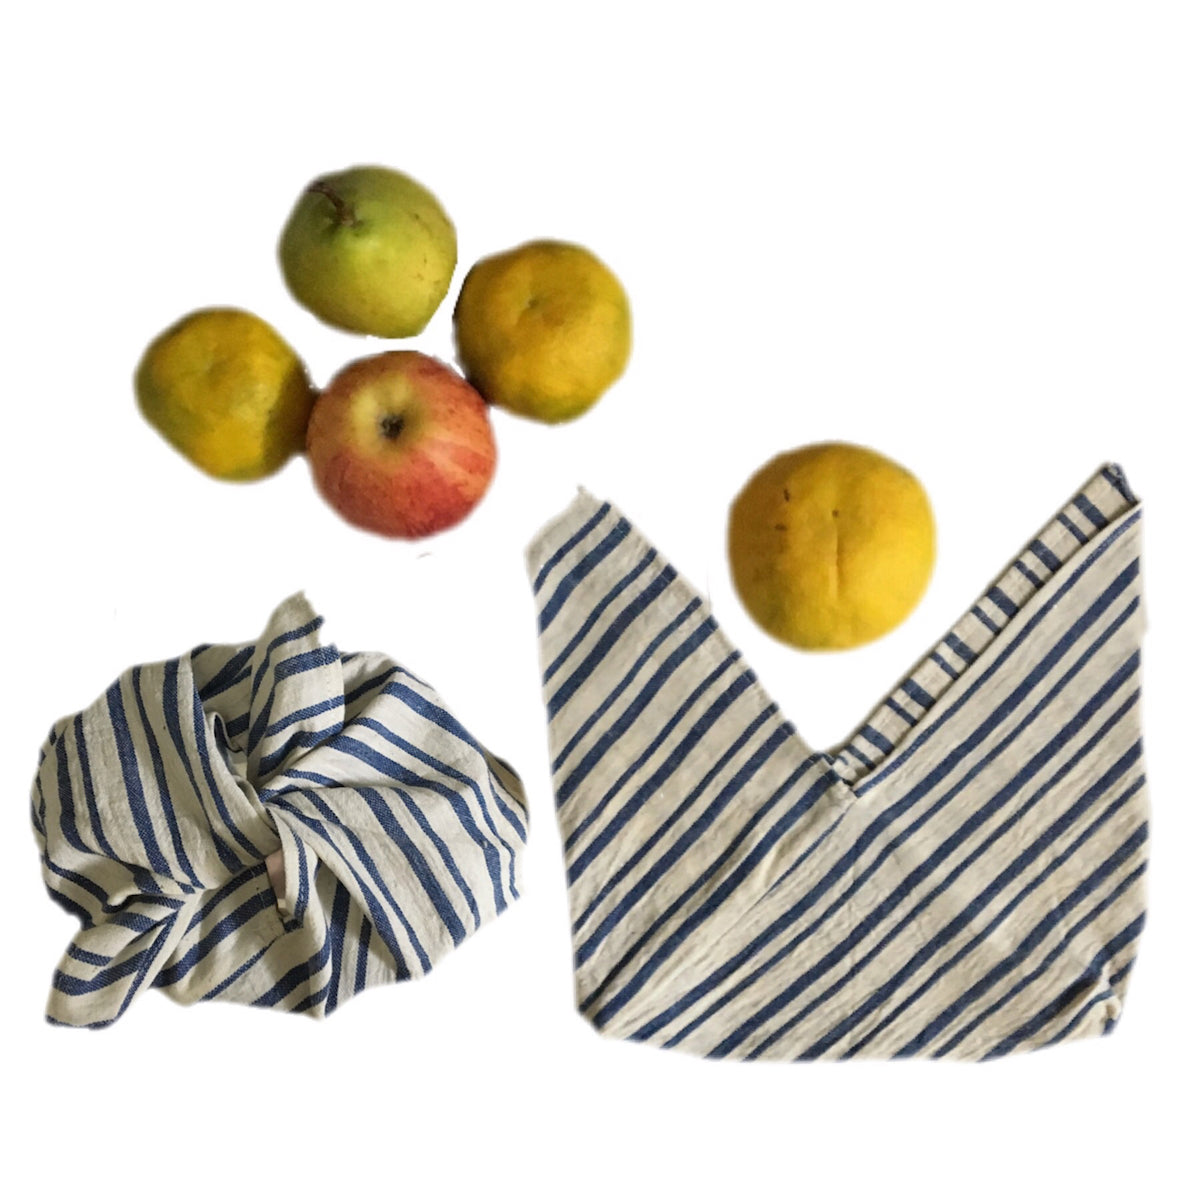 Tanuka Bento Snack Bag -  Set of 2  knot bags  in organic 'Kala' cotton  ( Blue Lines Design)